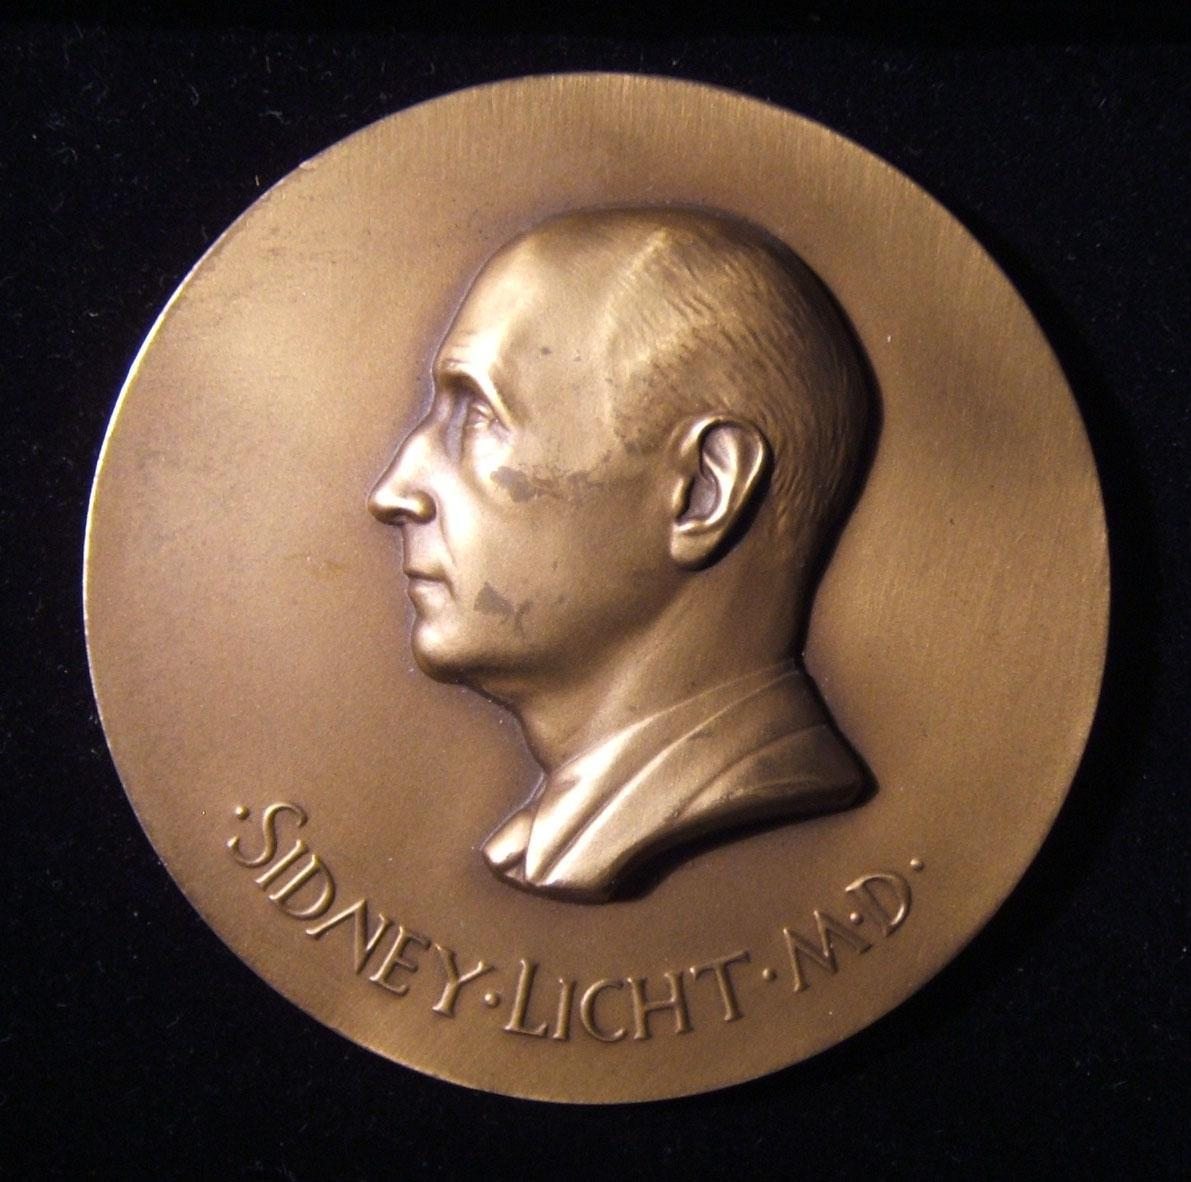 American Sidney Licht MD medical conference Judaica medal، 1968 by Paul Manship